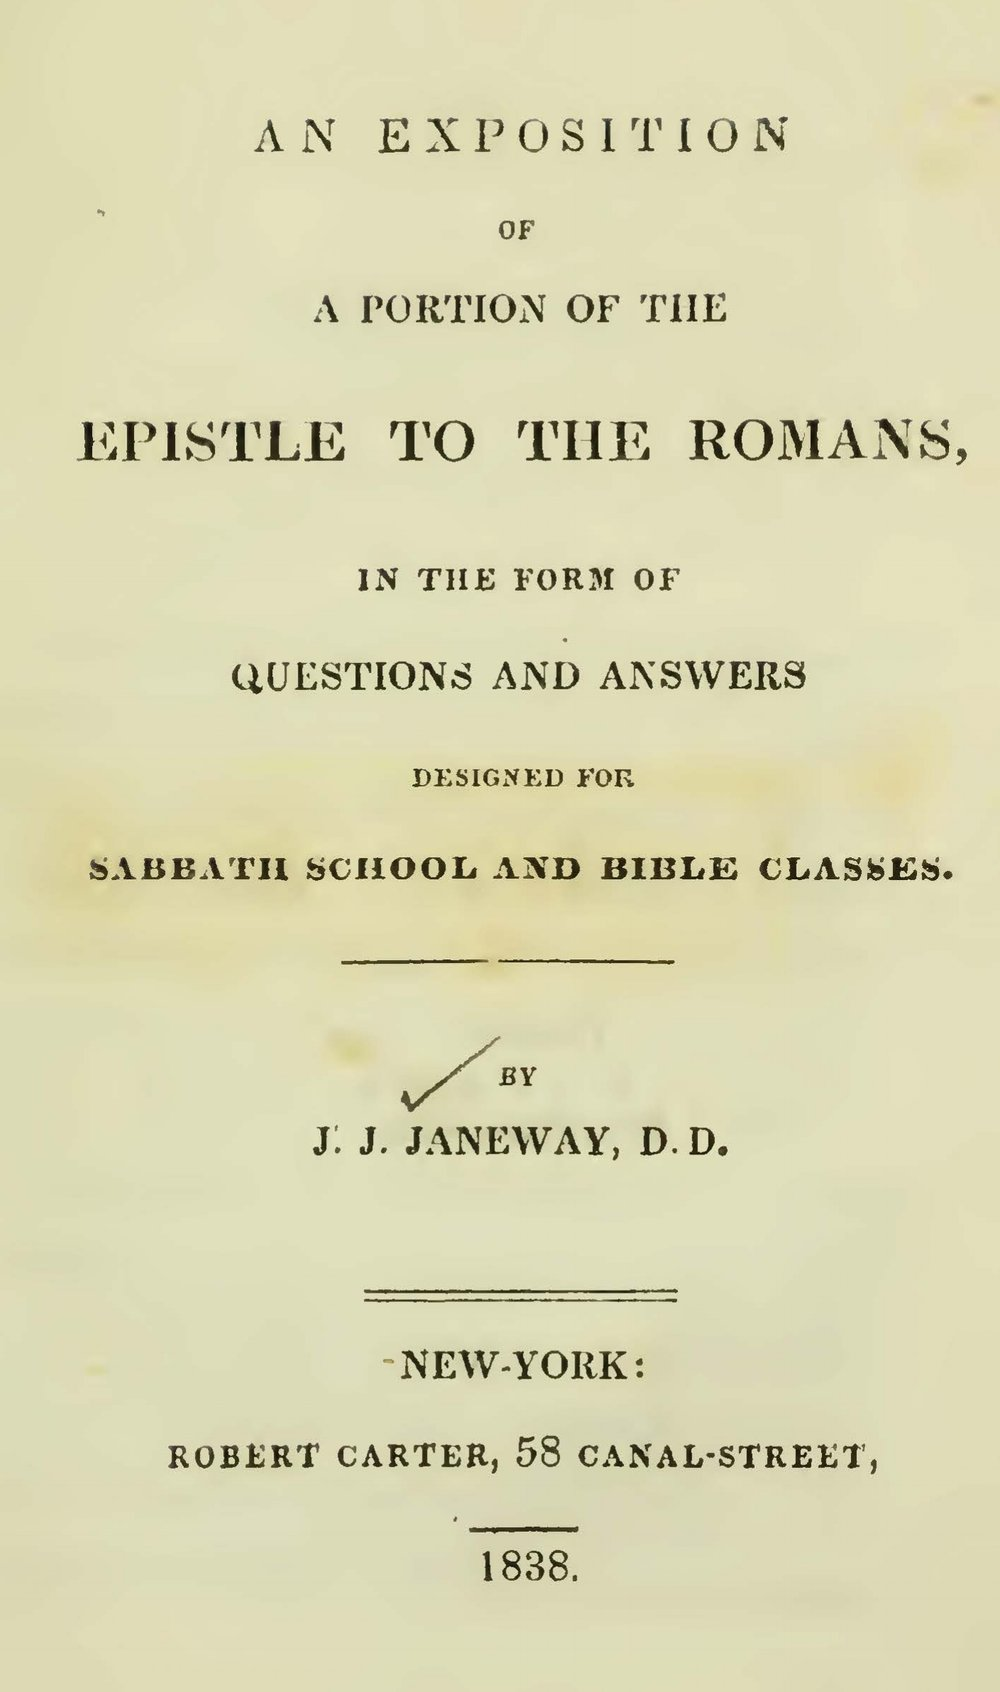 A 1842 edition with an expanded preface is available  here .